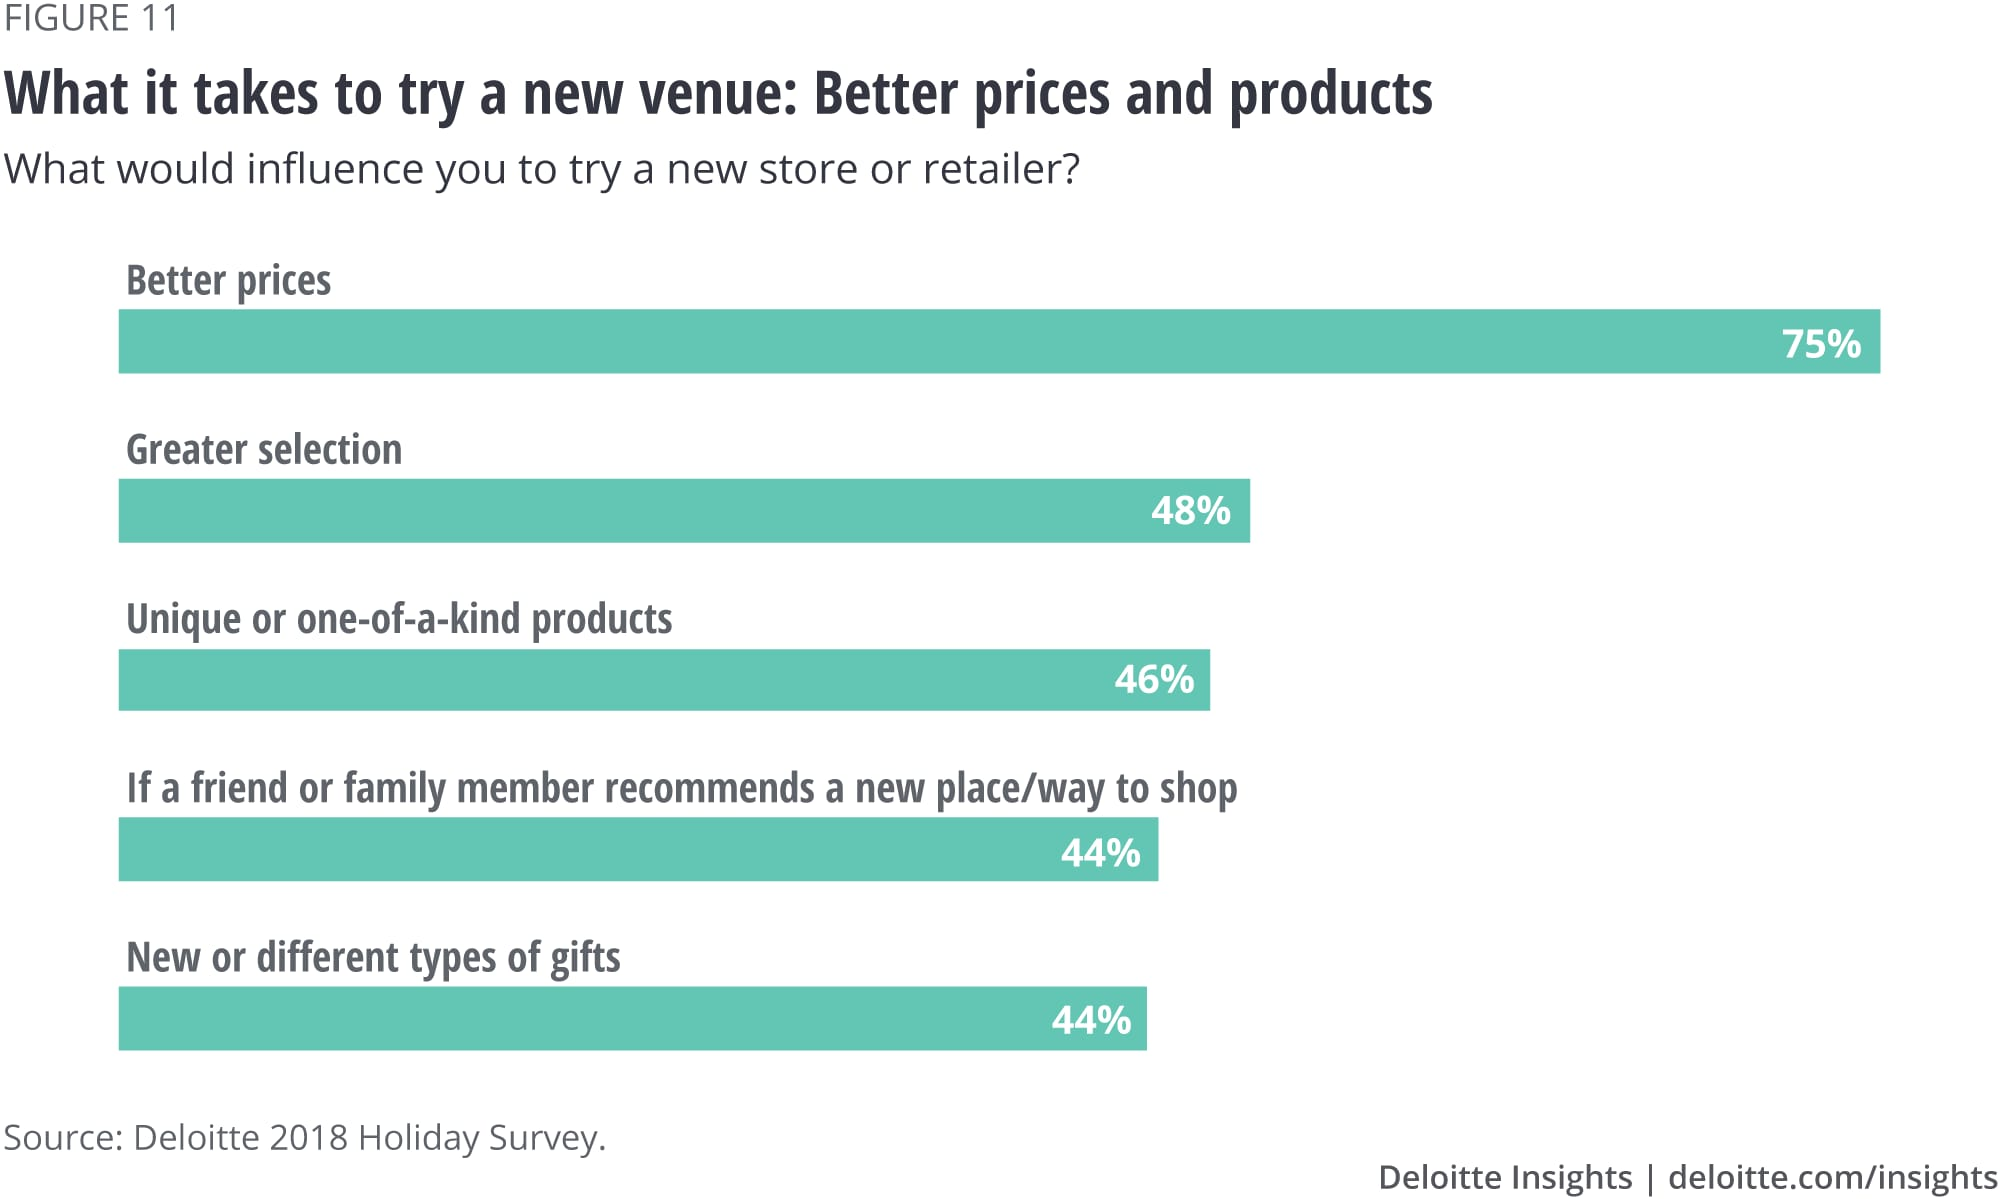 What it takes to try a new venue: Better prices and products